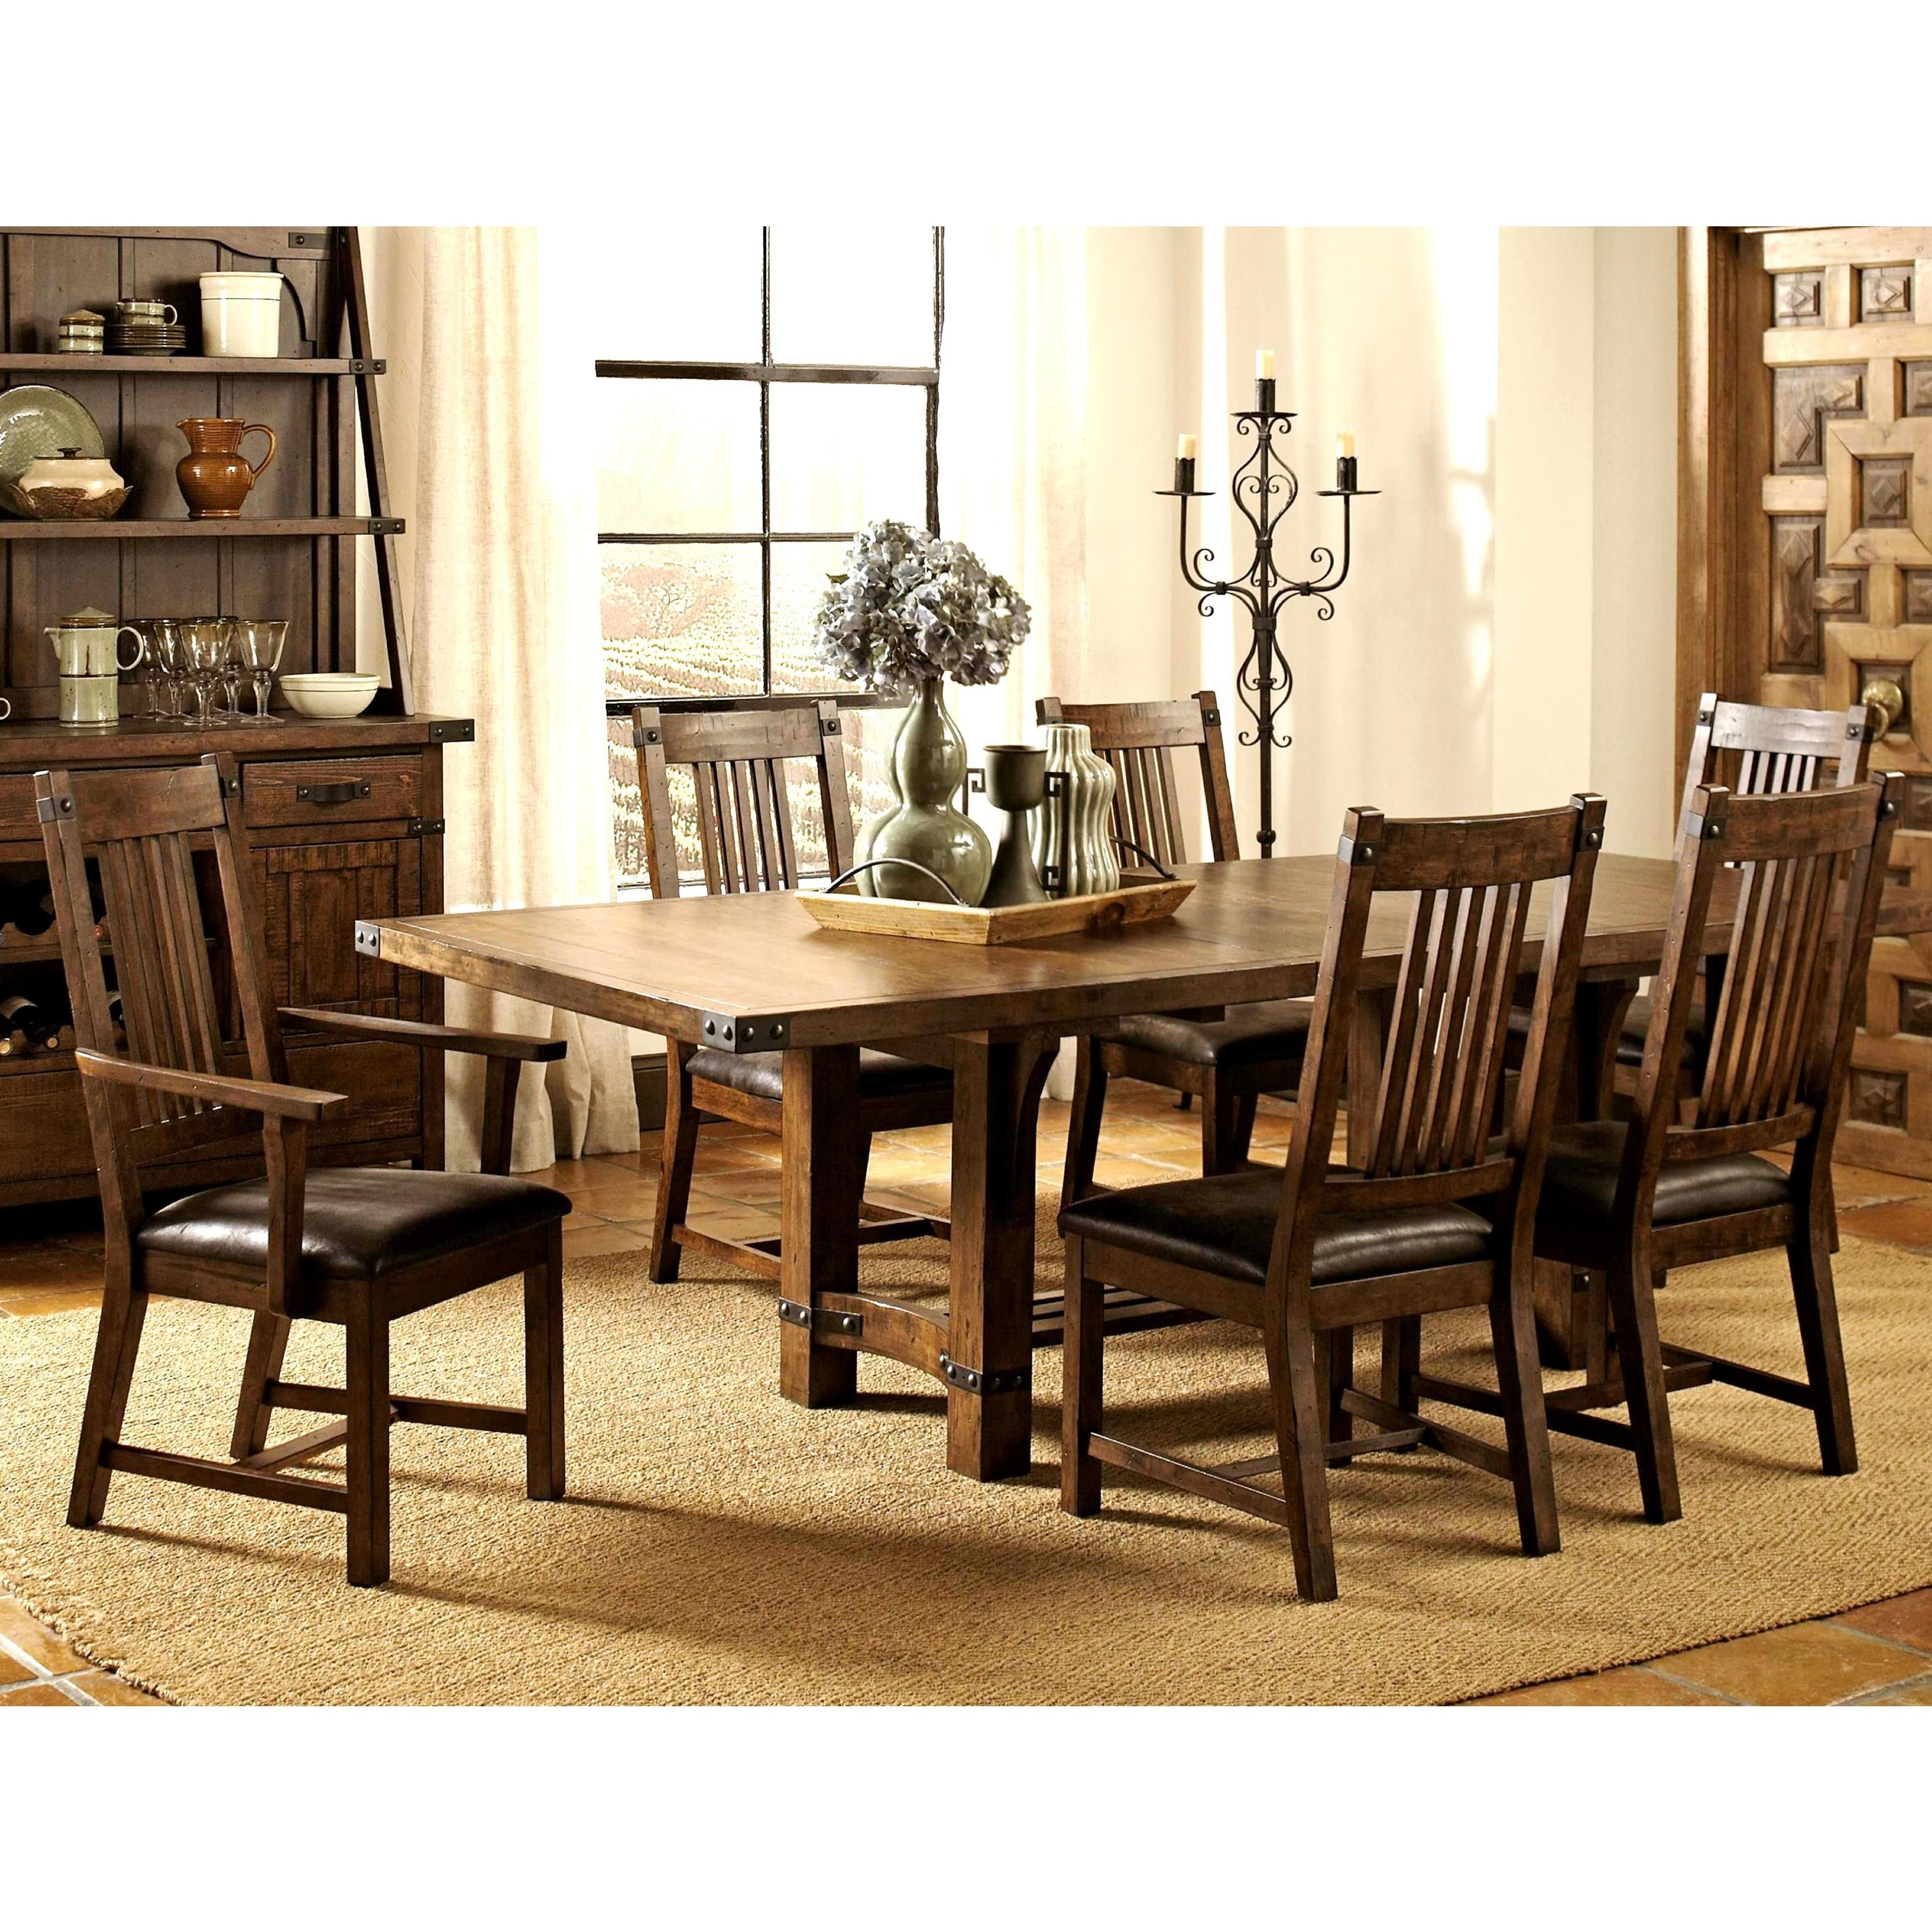 This Rustic Mission Style Dining Set Features A Solid Wood Construction  With Natural Wood Characters And